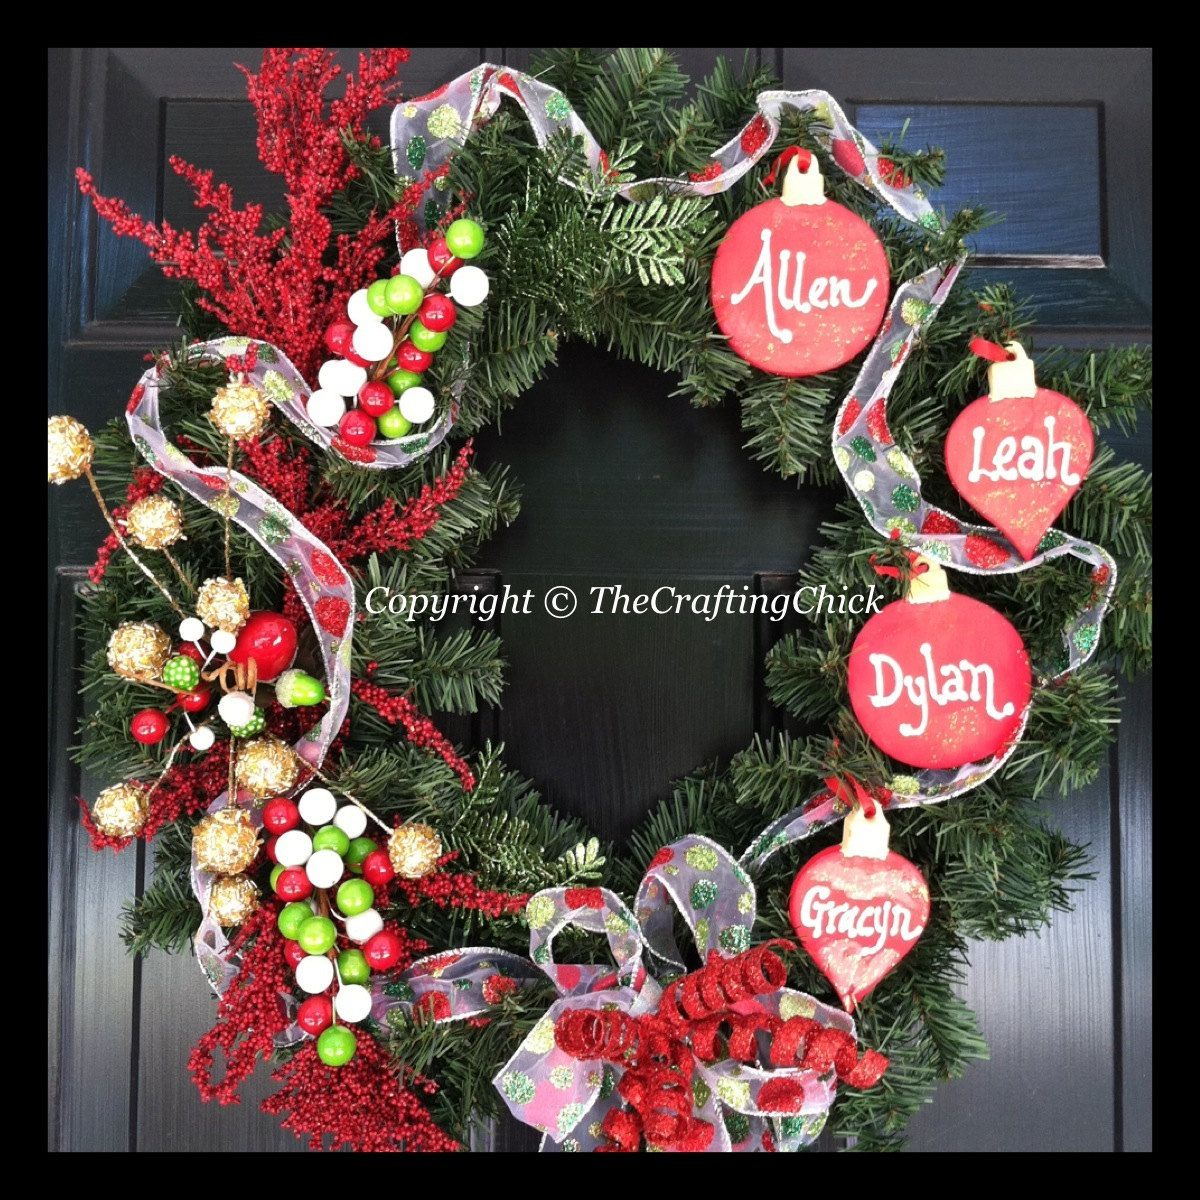 Christmas Wreath Personalized Family 50 00 Via Etsy Cute Idea With Th Christmas Wreaths Personalized Christmas Ornaments Family Christmas Ornament Wreath